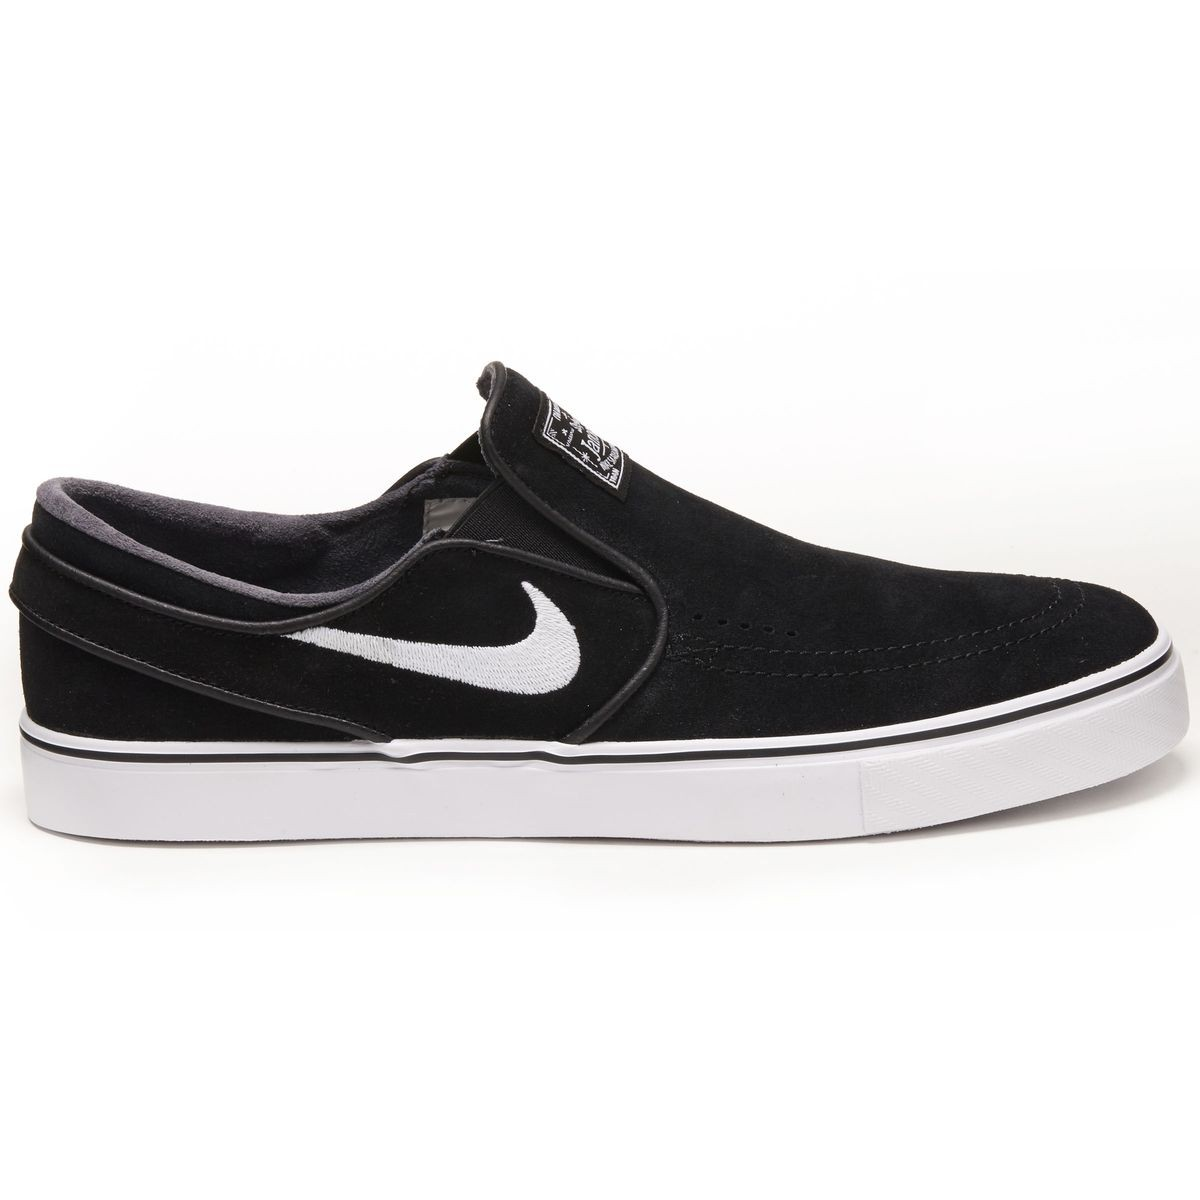 Paseo Sangriento Nebu  Nike Zoom Stefan Janoski Slip-On Canvas Shoes